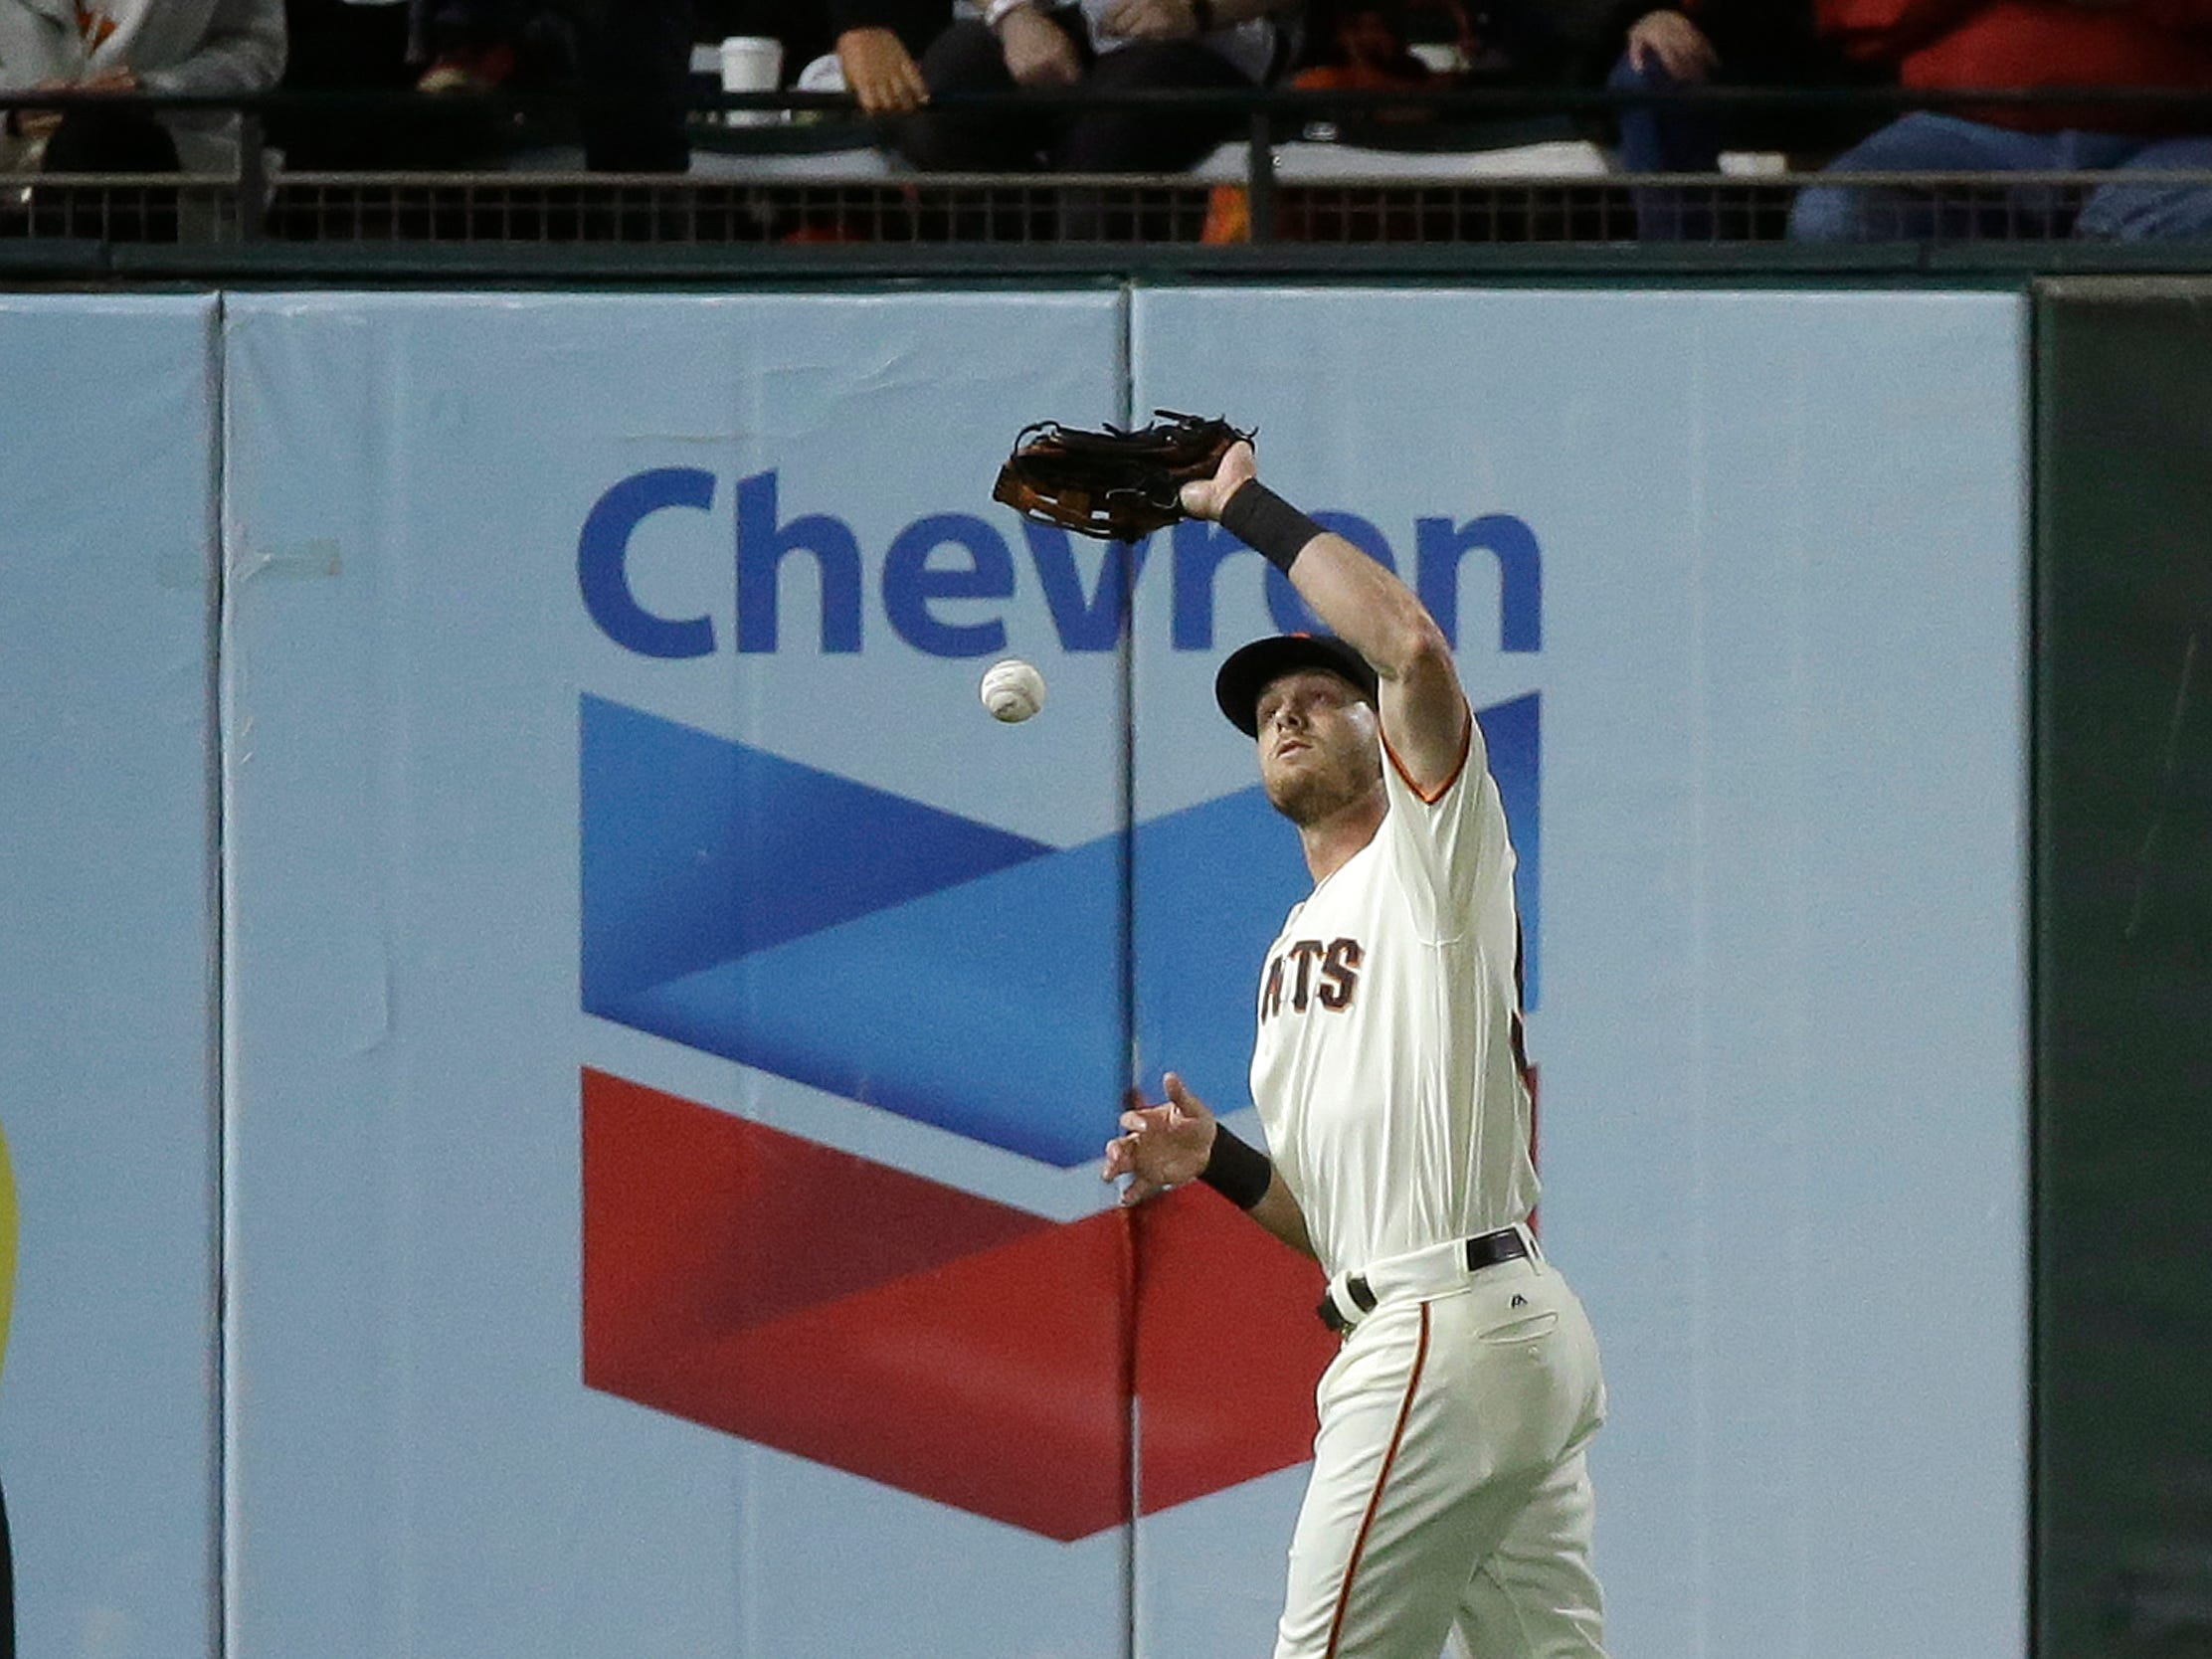 San Francisco Giants left fielder Austin Slater drops a fly ball hit by the Arizona Diamondbacks' Jon Jay in the seventh inning of a baseball game, Tuesday, Aug. 28, 2018, in San Francisco. Slater was given an error and Jay was safe at third base on the play.